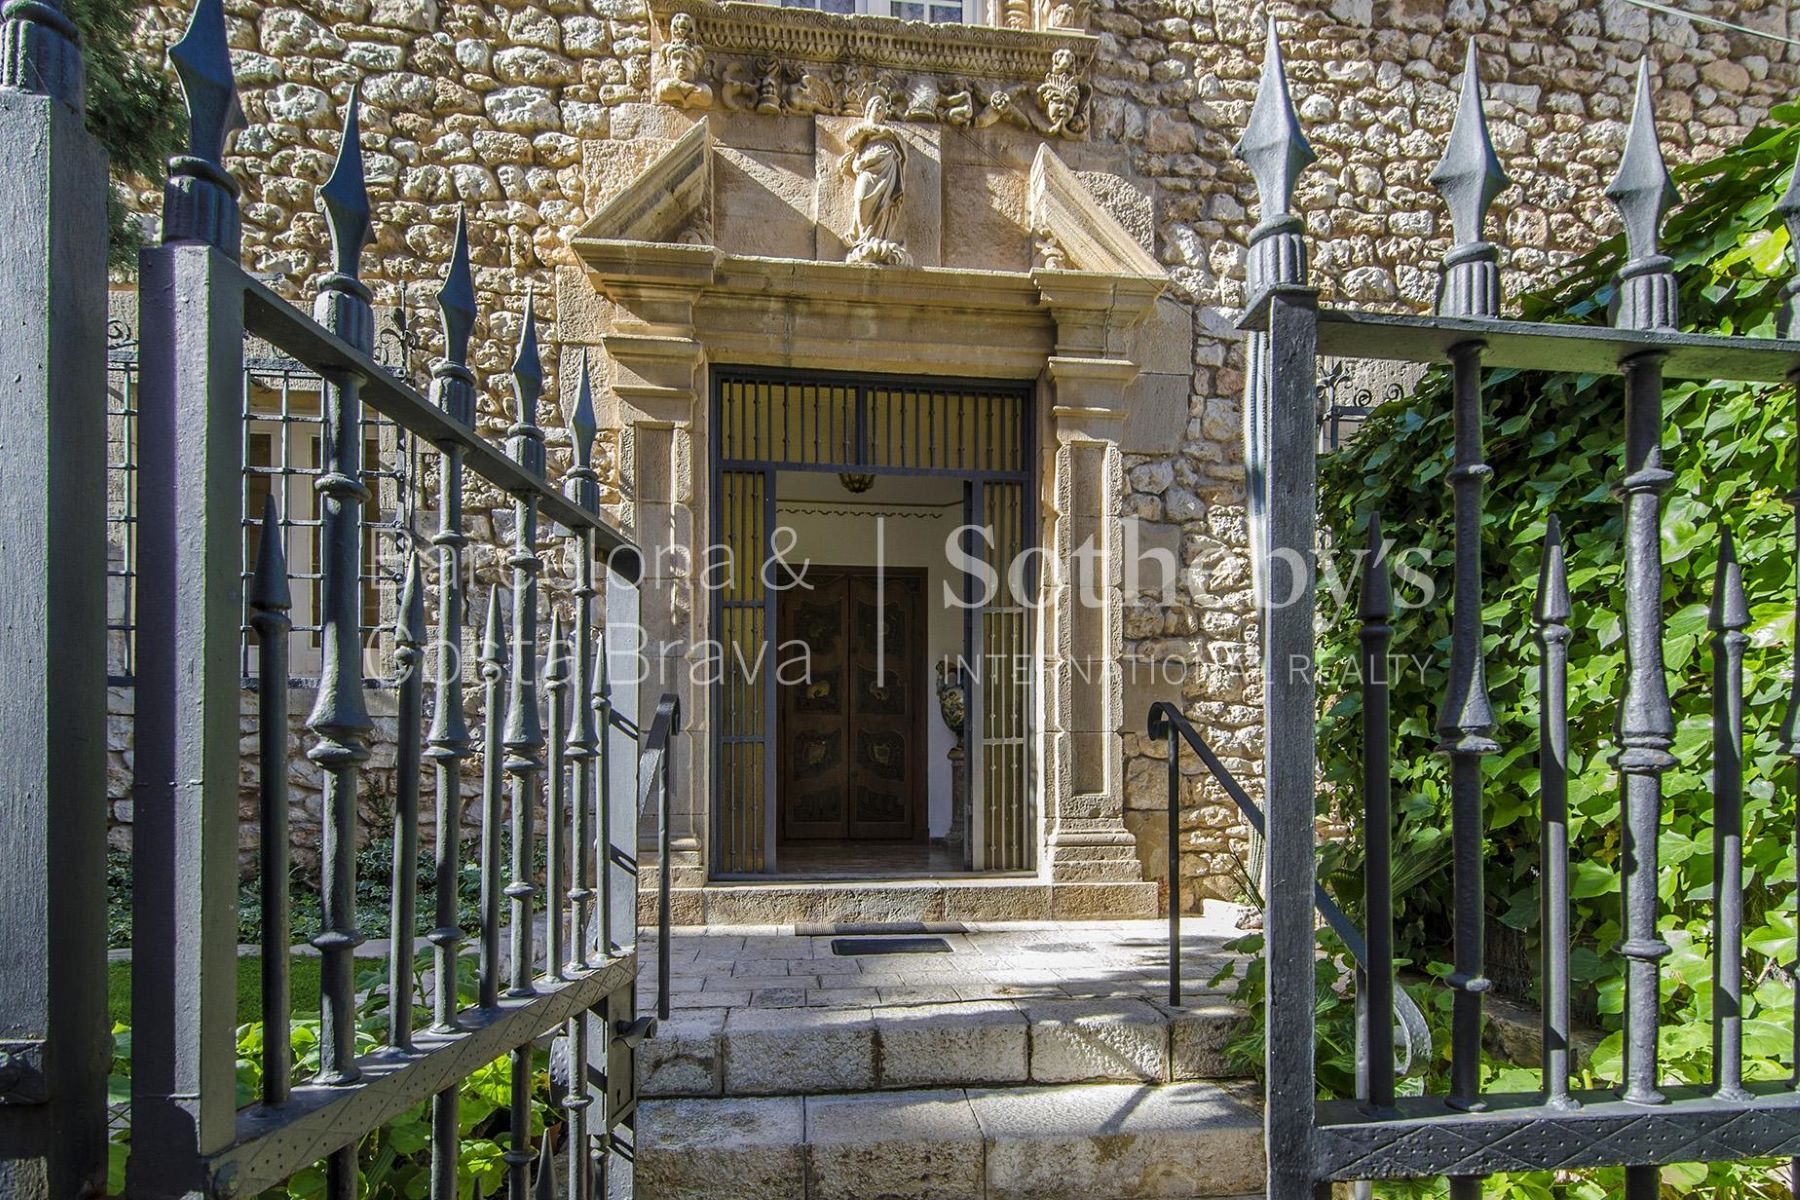 Single Family Home for Sale at A Unique House with a Garden in the Historical Center of Sitges Sitges, Barcelona, 08870 Spain